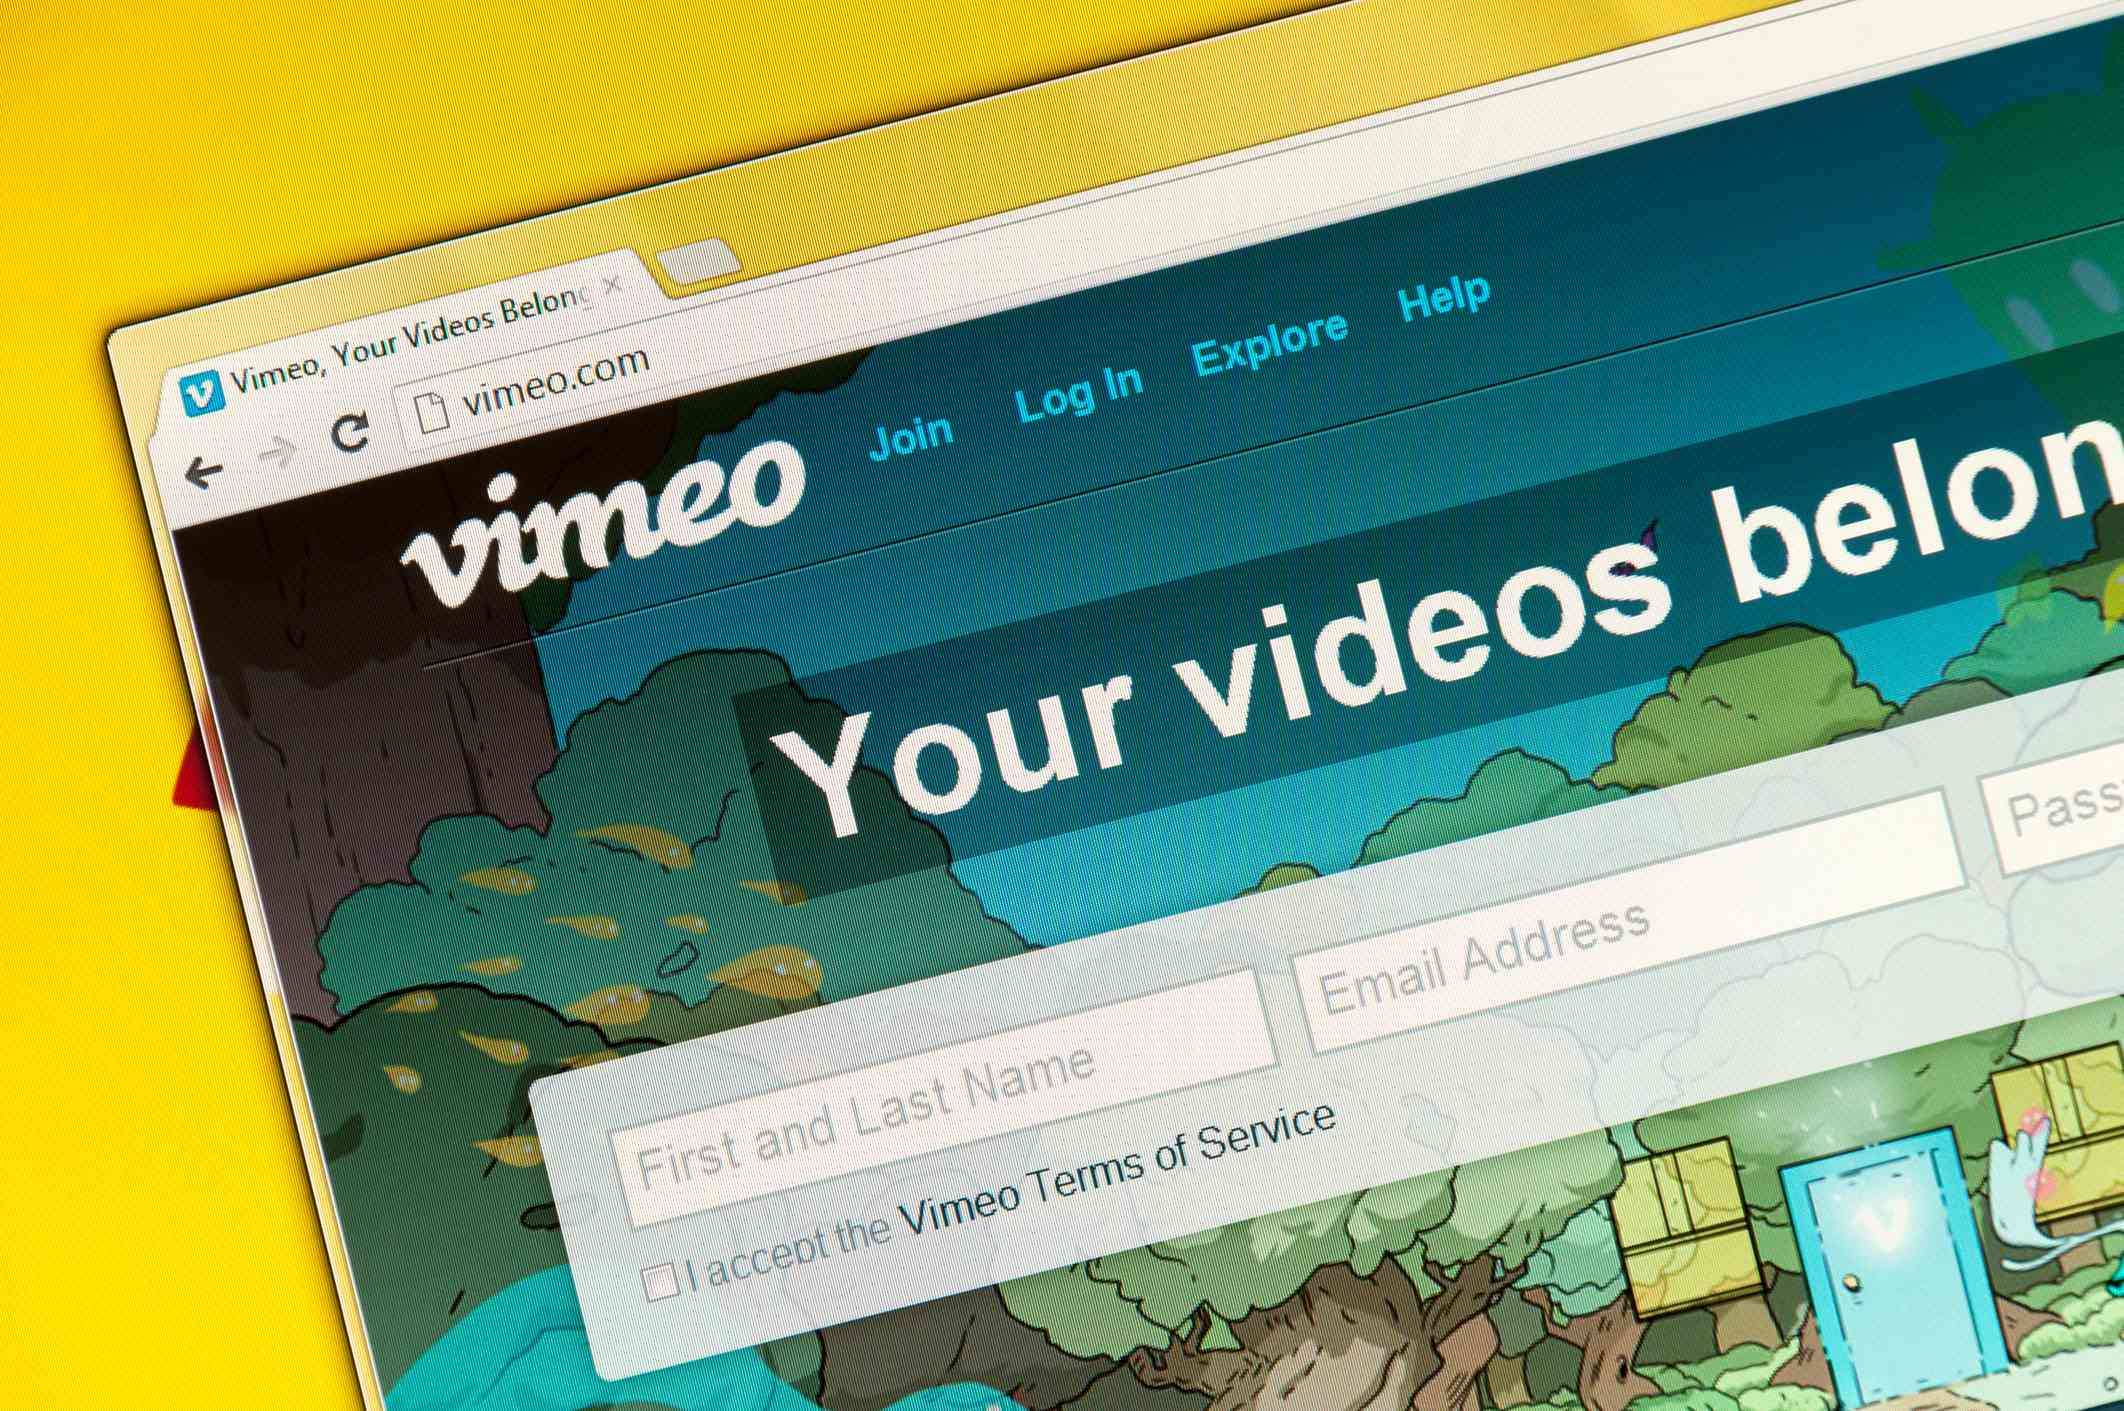 Vimeo website on a yellow background